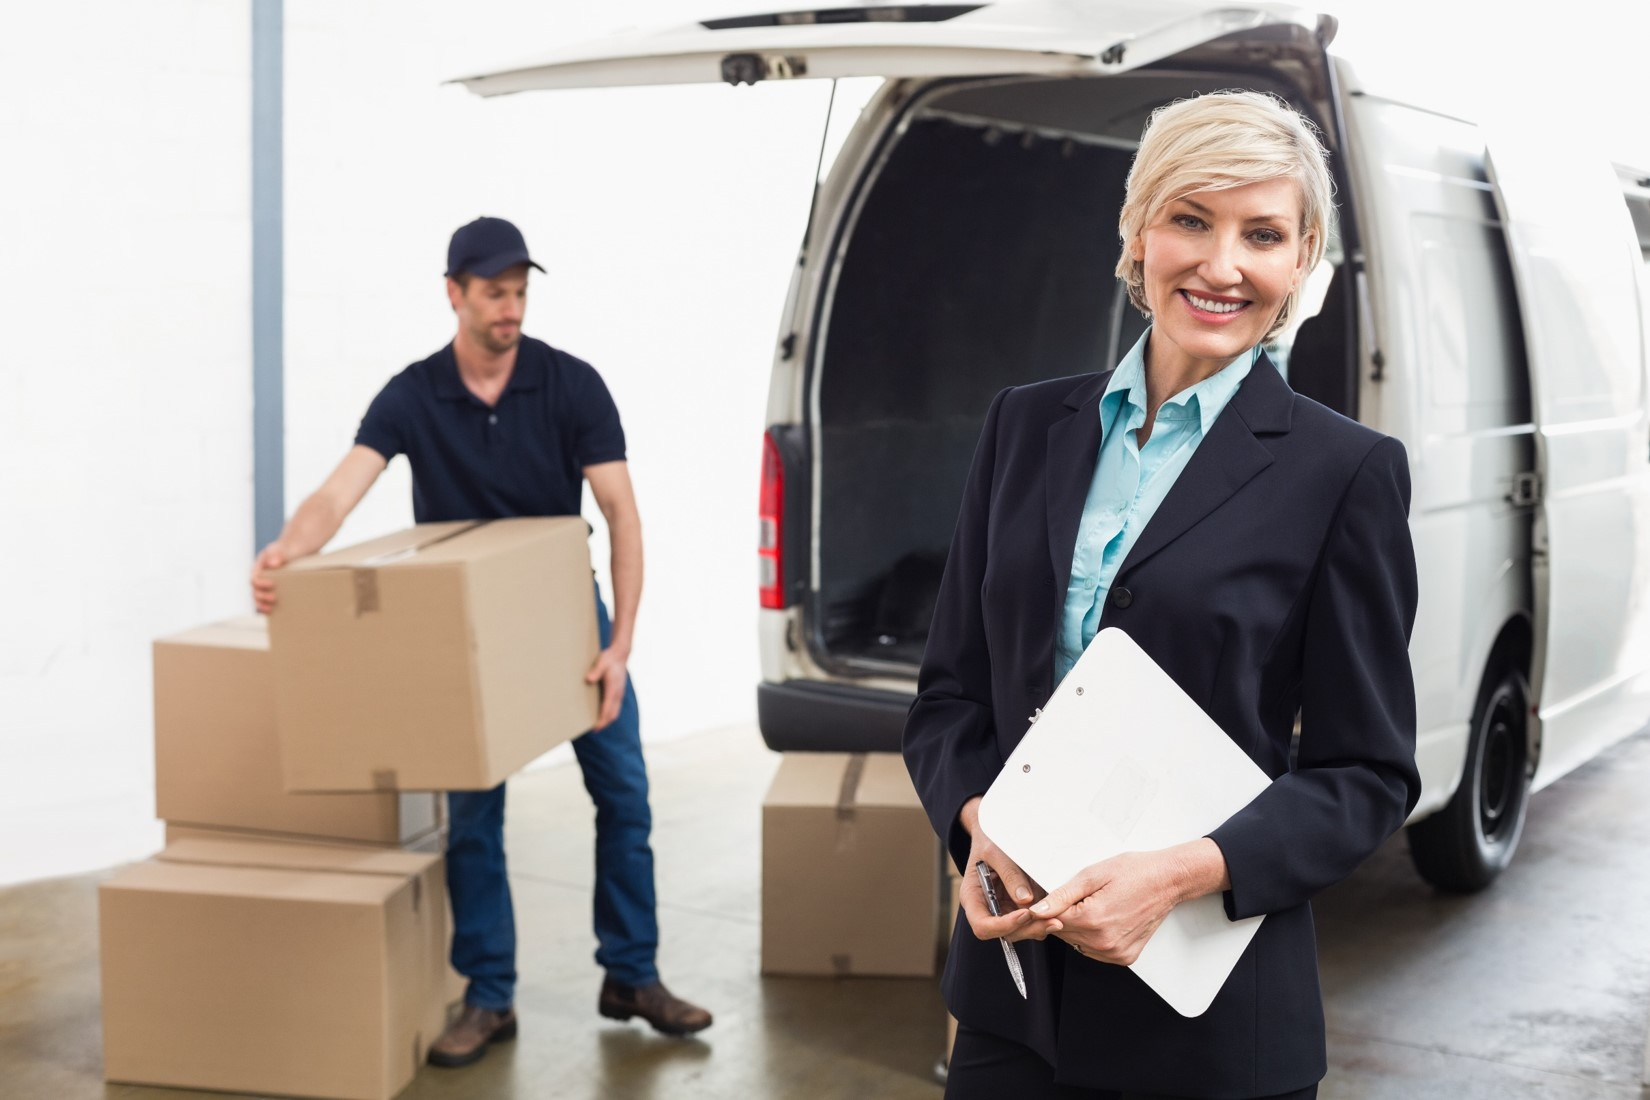 Bespoke Courier Company Same Day Delivery London Harrogate.jpg